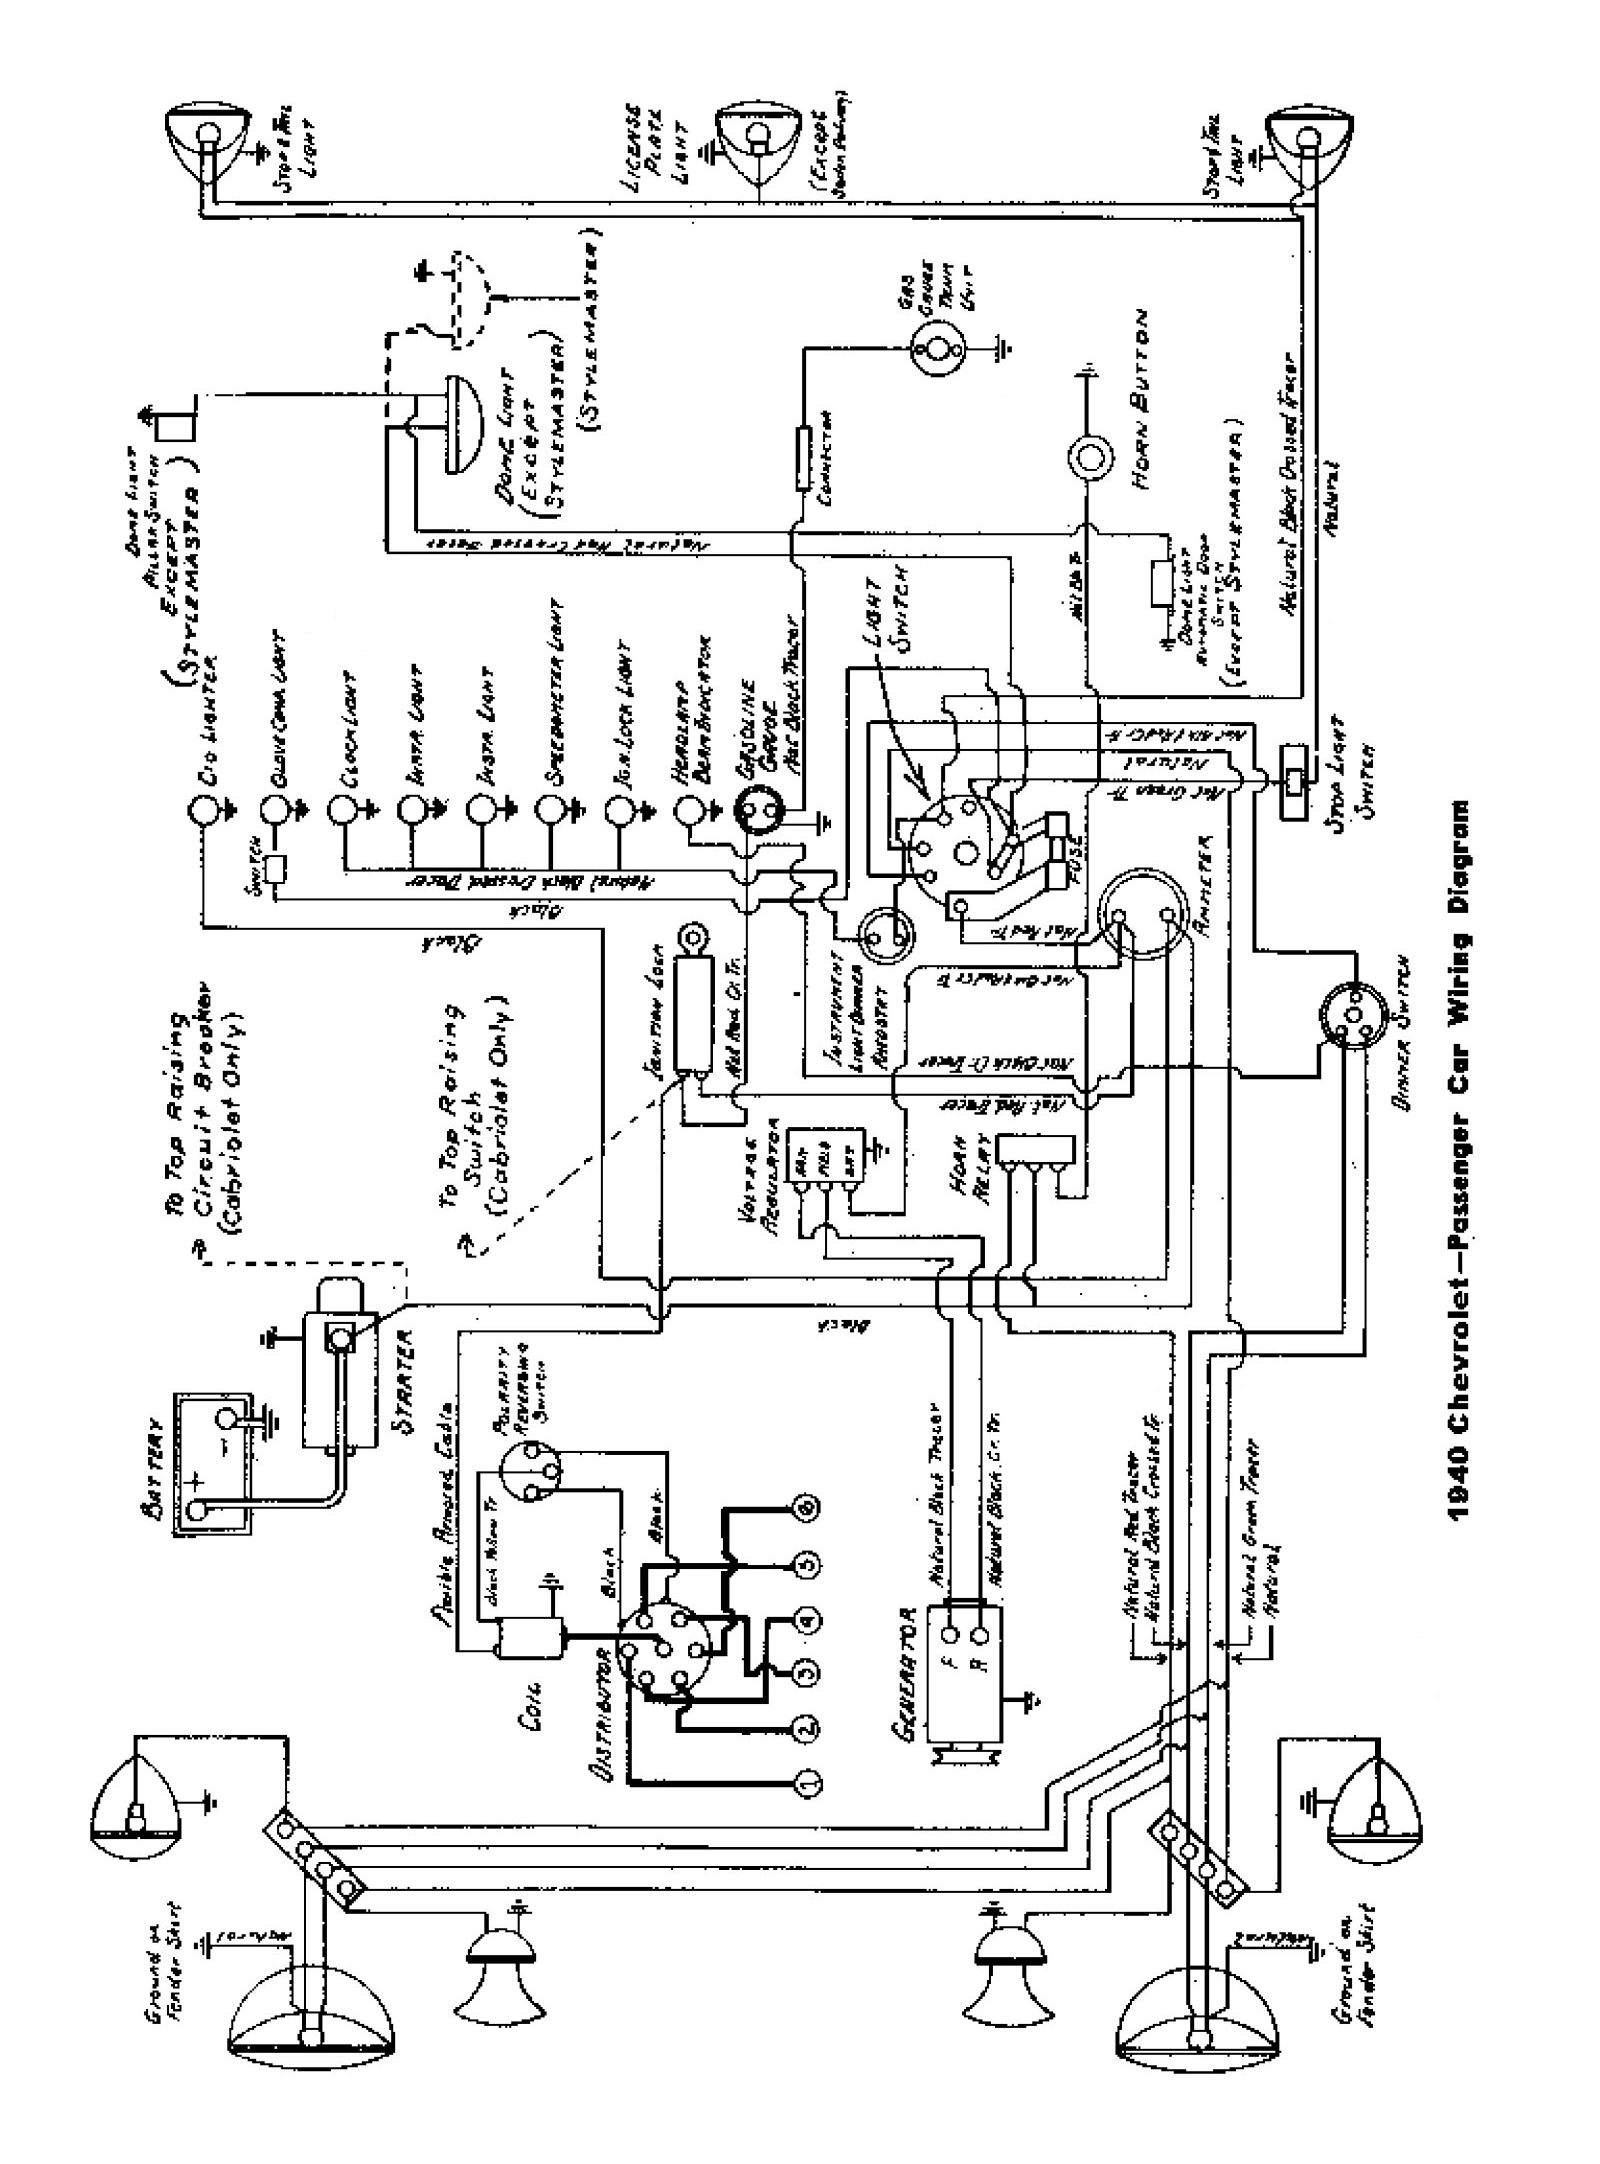 1947 Ford Wiring Diagram Data 1974 F250 1942 48 Flathead Frame